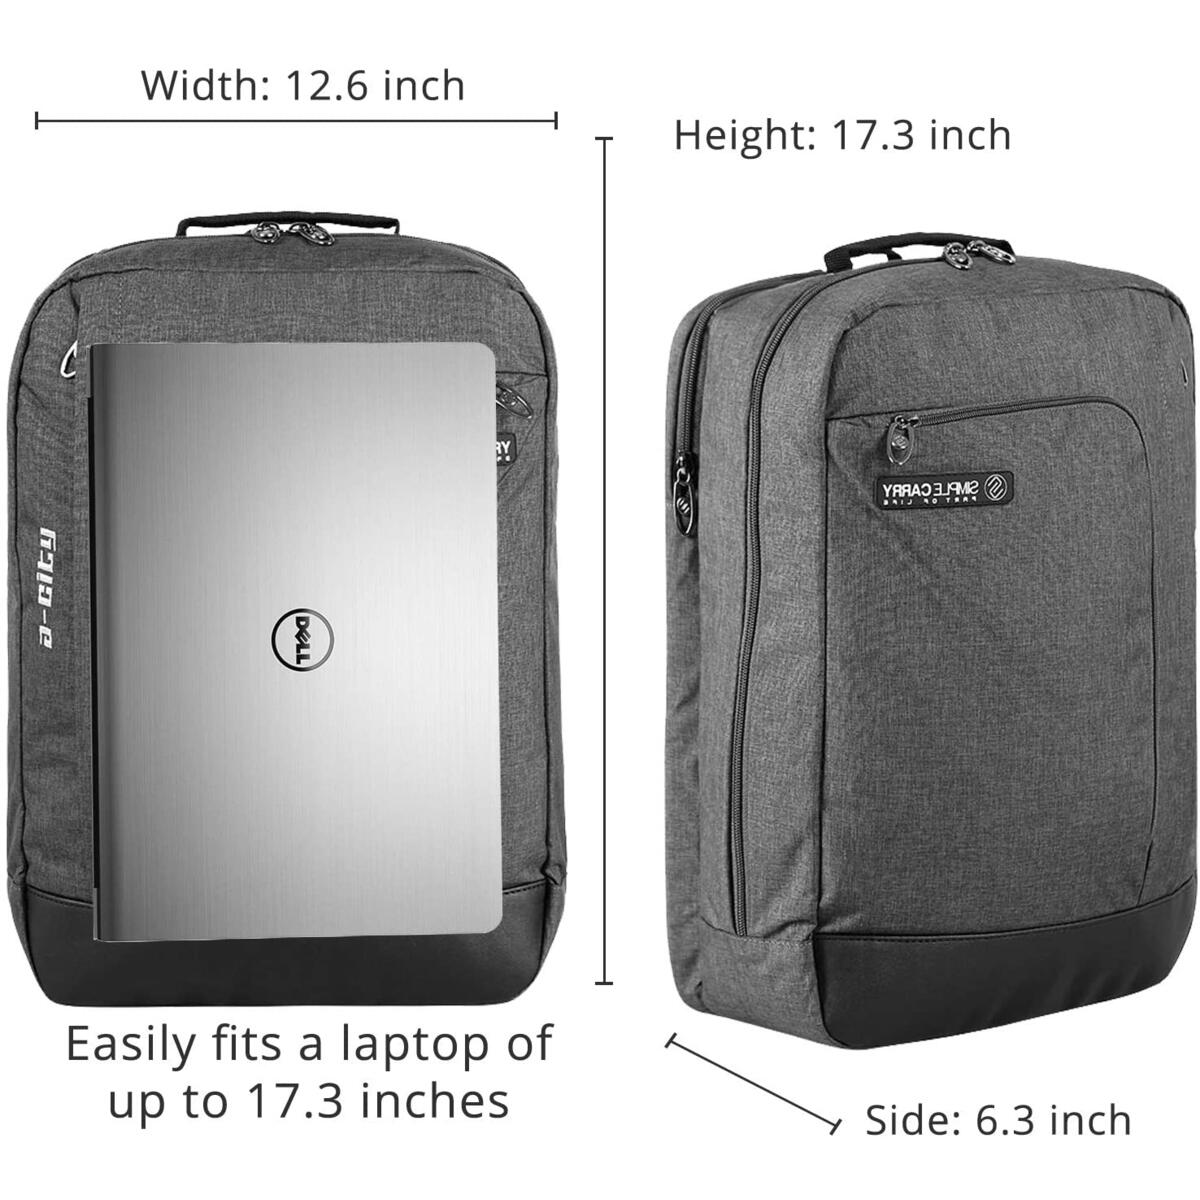 SimpleCarry Travel Shockproof Laptop Compartment Business College Backpack Water Resistant Casual & Durable Bag for Men & Women (Grey) (17.5 inch laptop compartment)